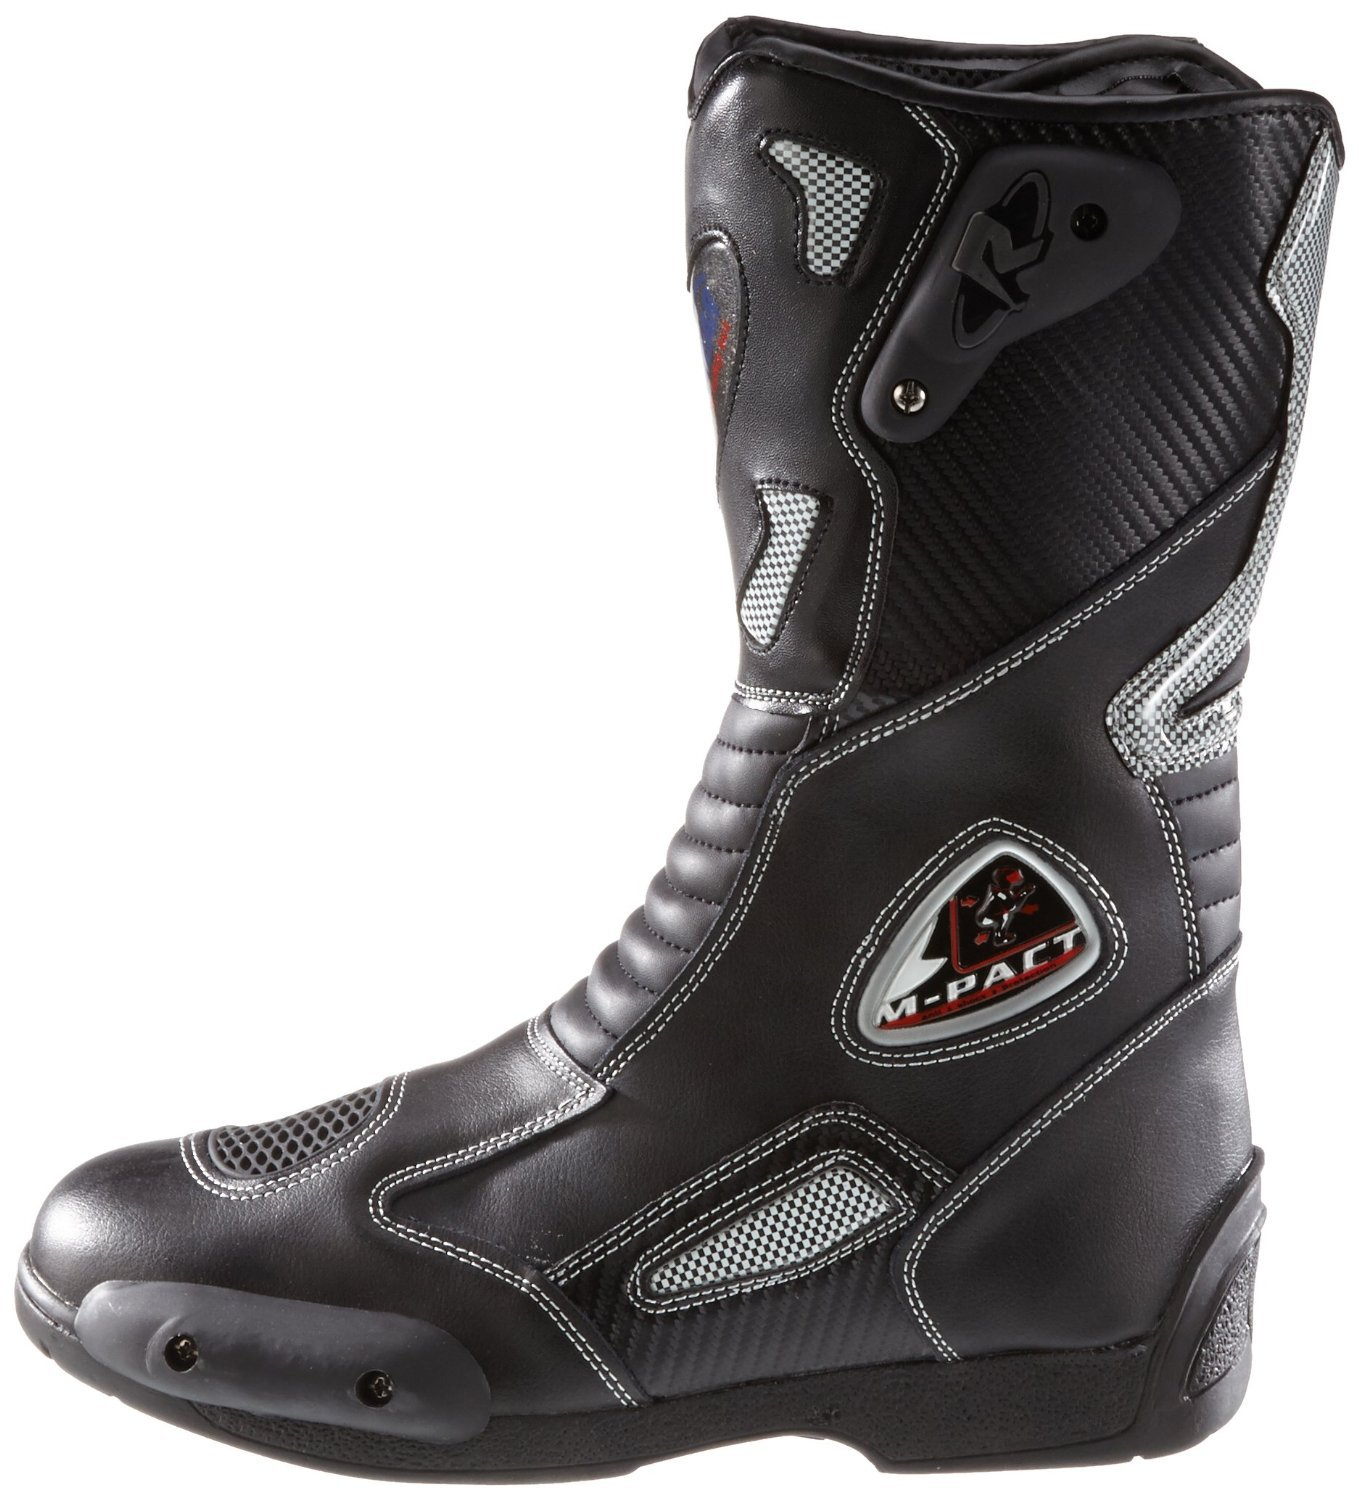 Protectwear Motorcycle boots Sport 03203 Size 45: Amazon.co.uk: Car &  Motorbike